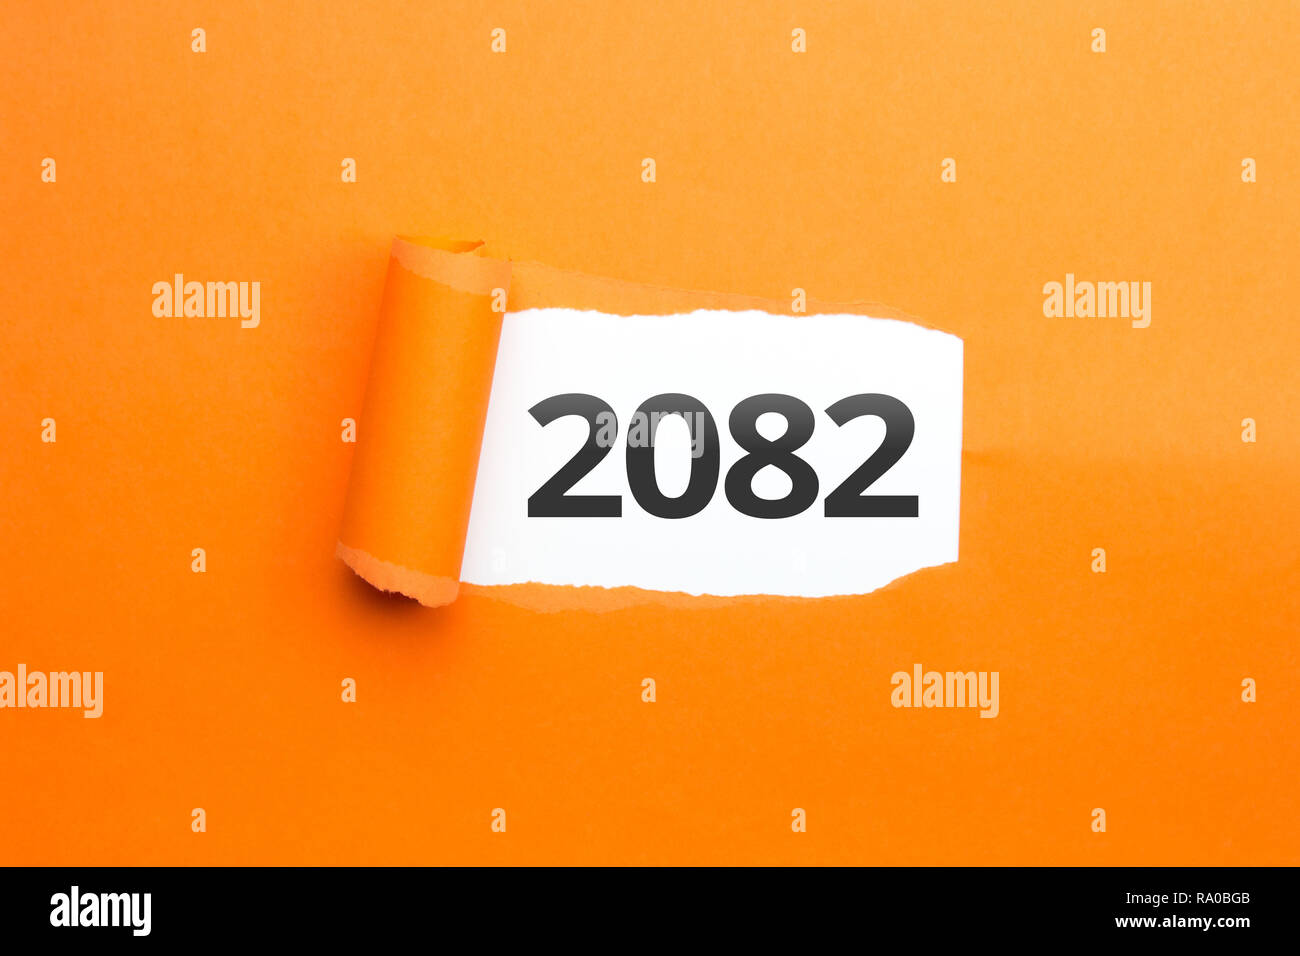 surprising Number / Year 2082 orange background